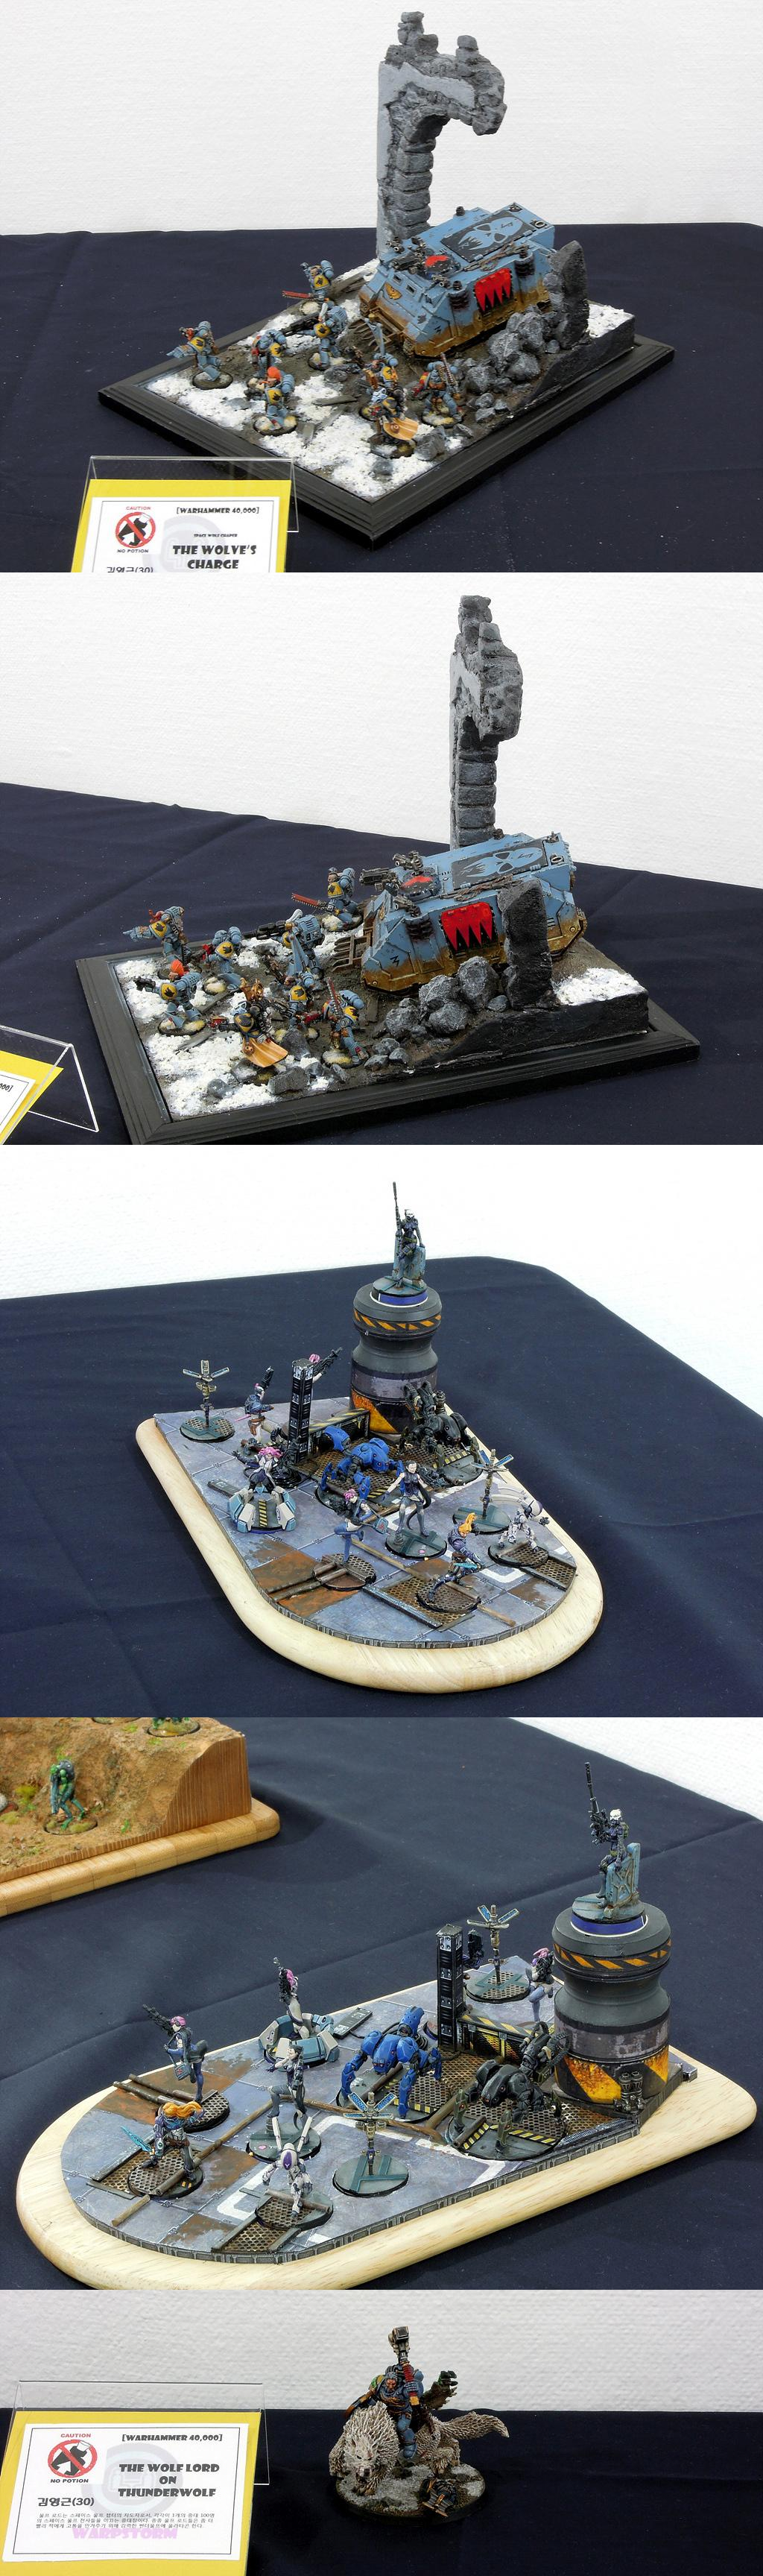 Aleph, Diorama, Display, Exhibition, Infinity, Space Wolves, Warhammer 40,000, Warhammer Fantasy